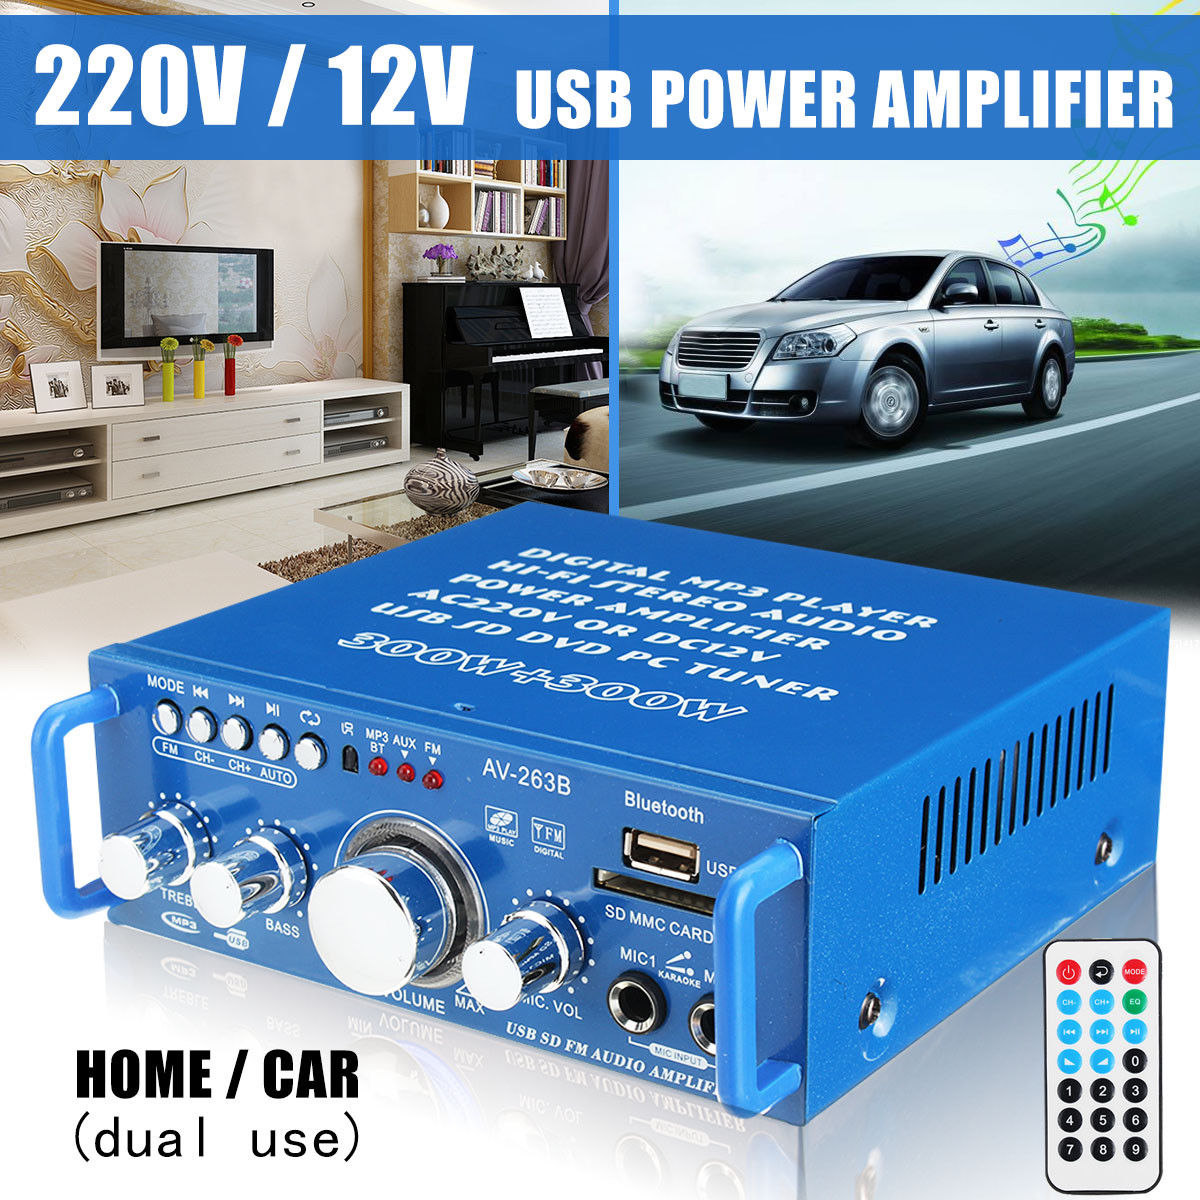 600W bluetooth 2CH Home Car Power Amplifier HiFi Stereo Audio Karaoke USB FM SD